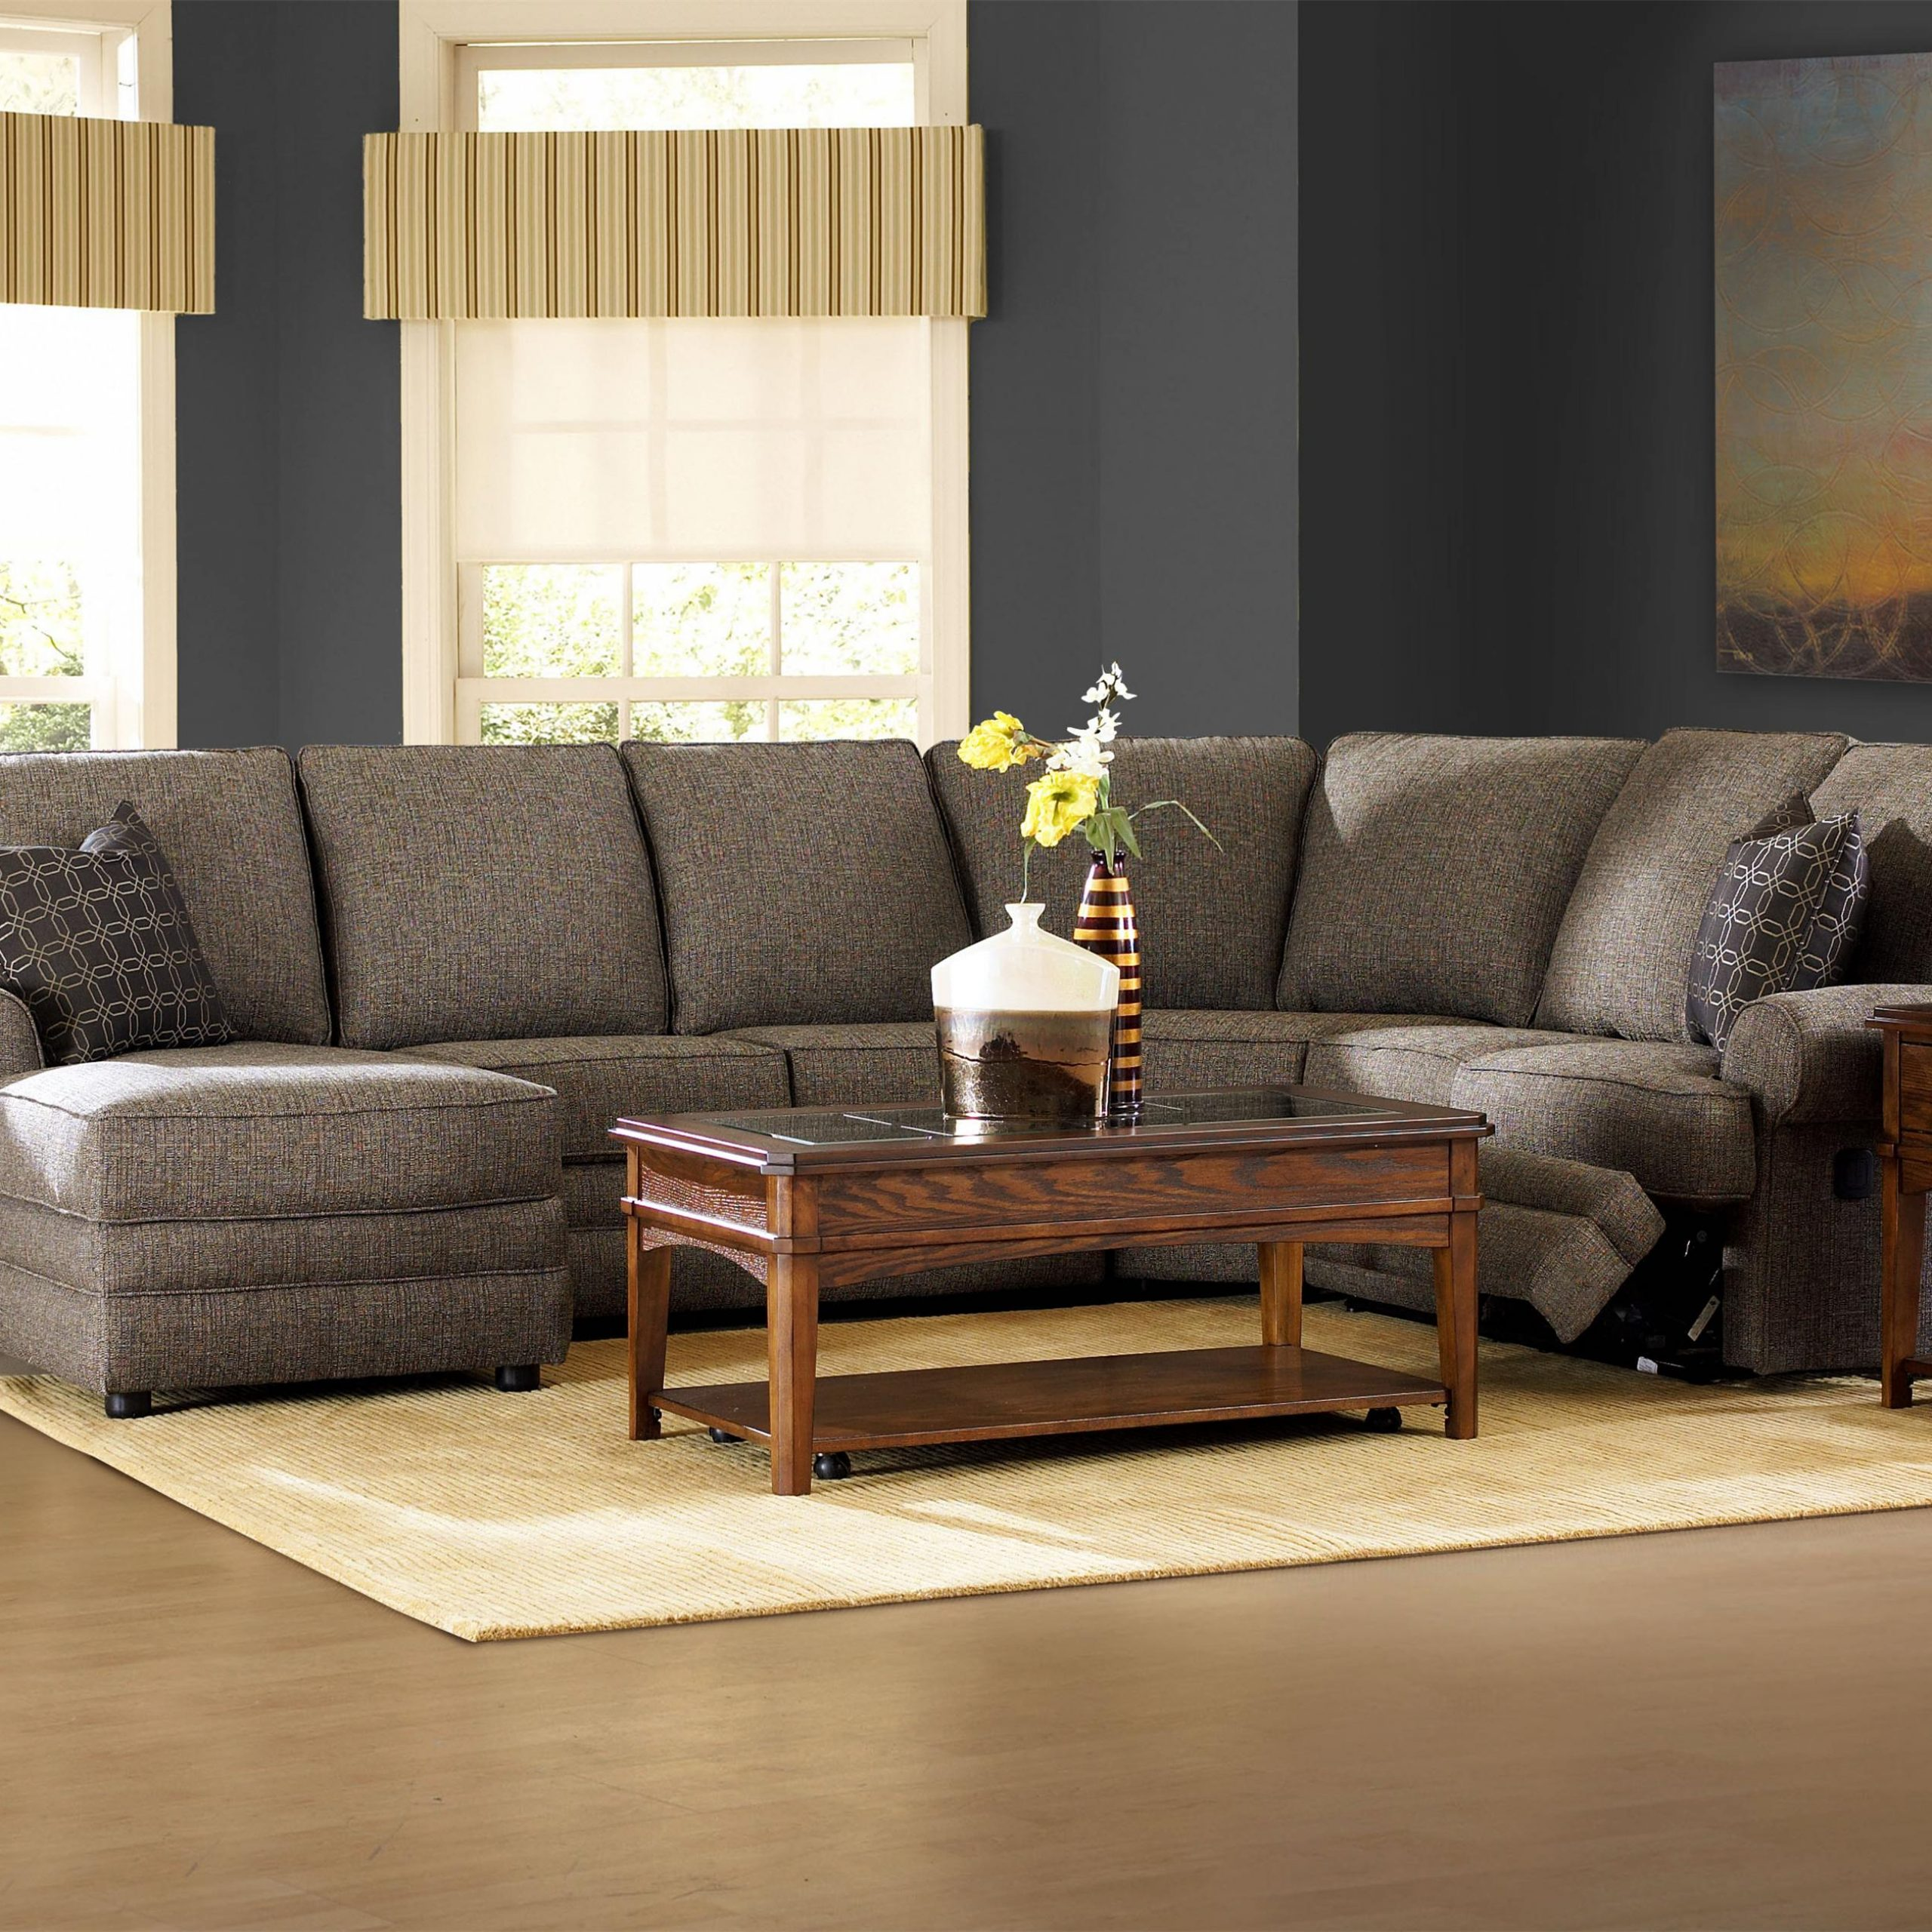 Most Popular Copenhagen Reclining Sectional Sofas With Right Storage Chaise Inside Reclining Sectional With Right Side Chaiseklaussner (View 17 of 20)